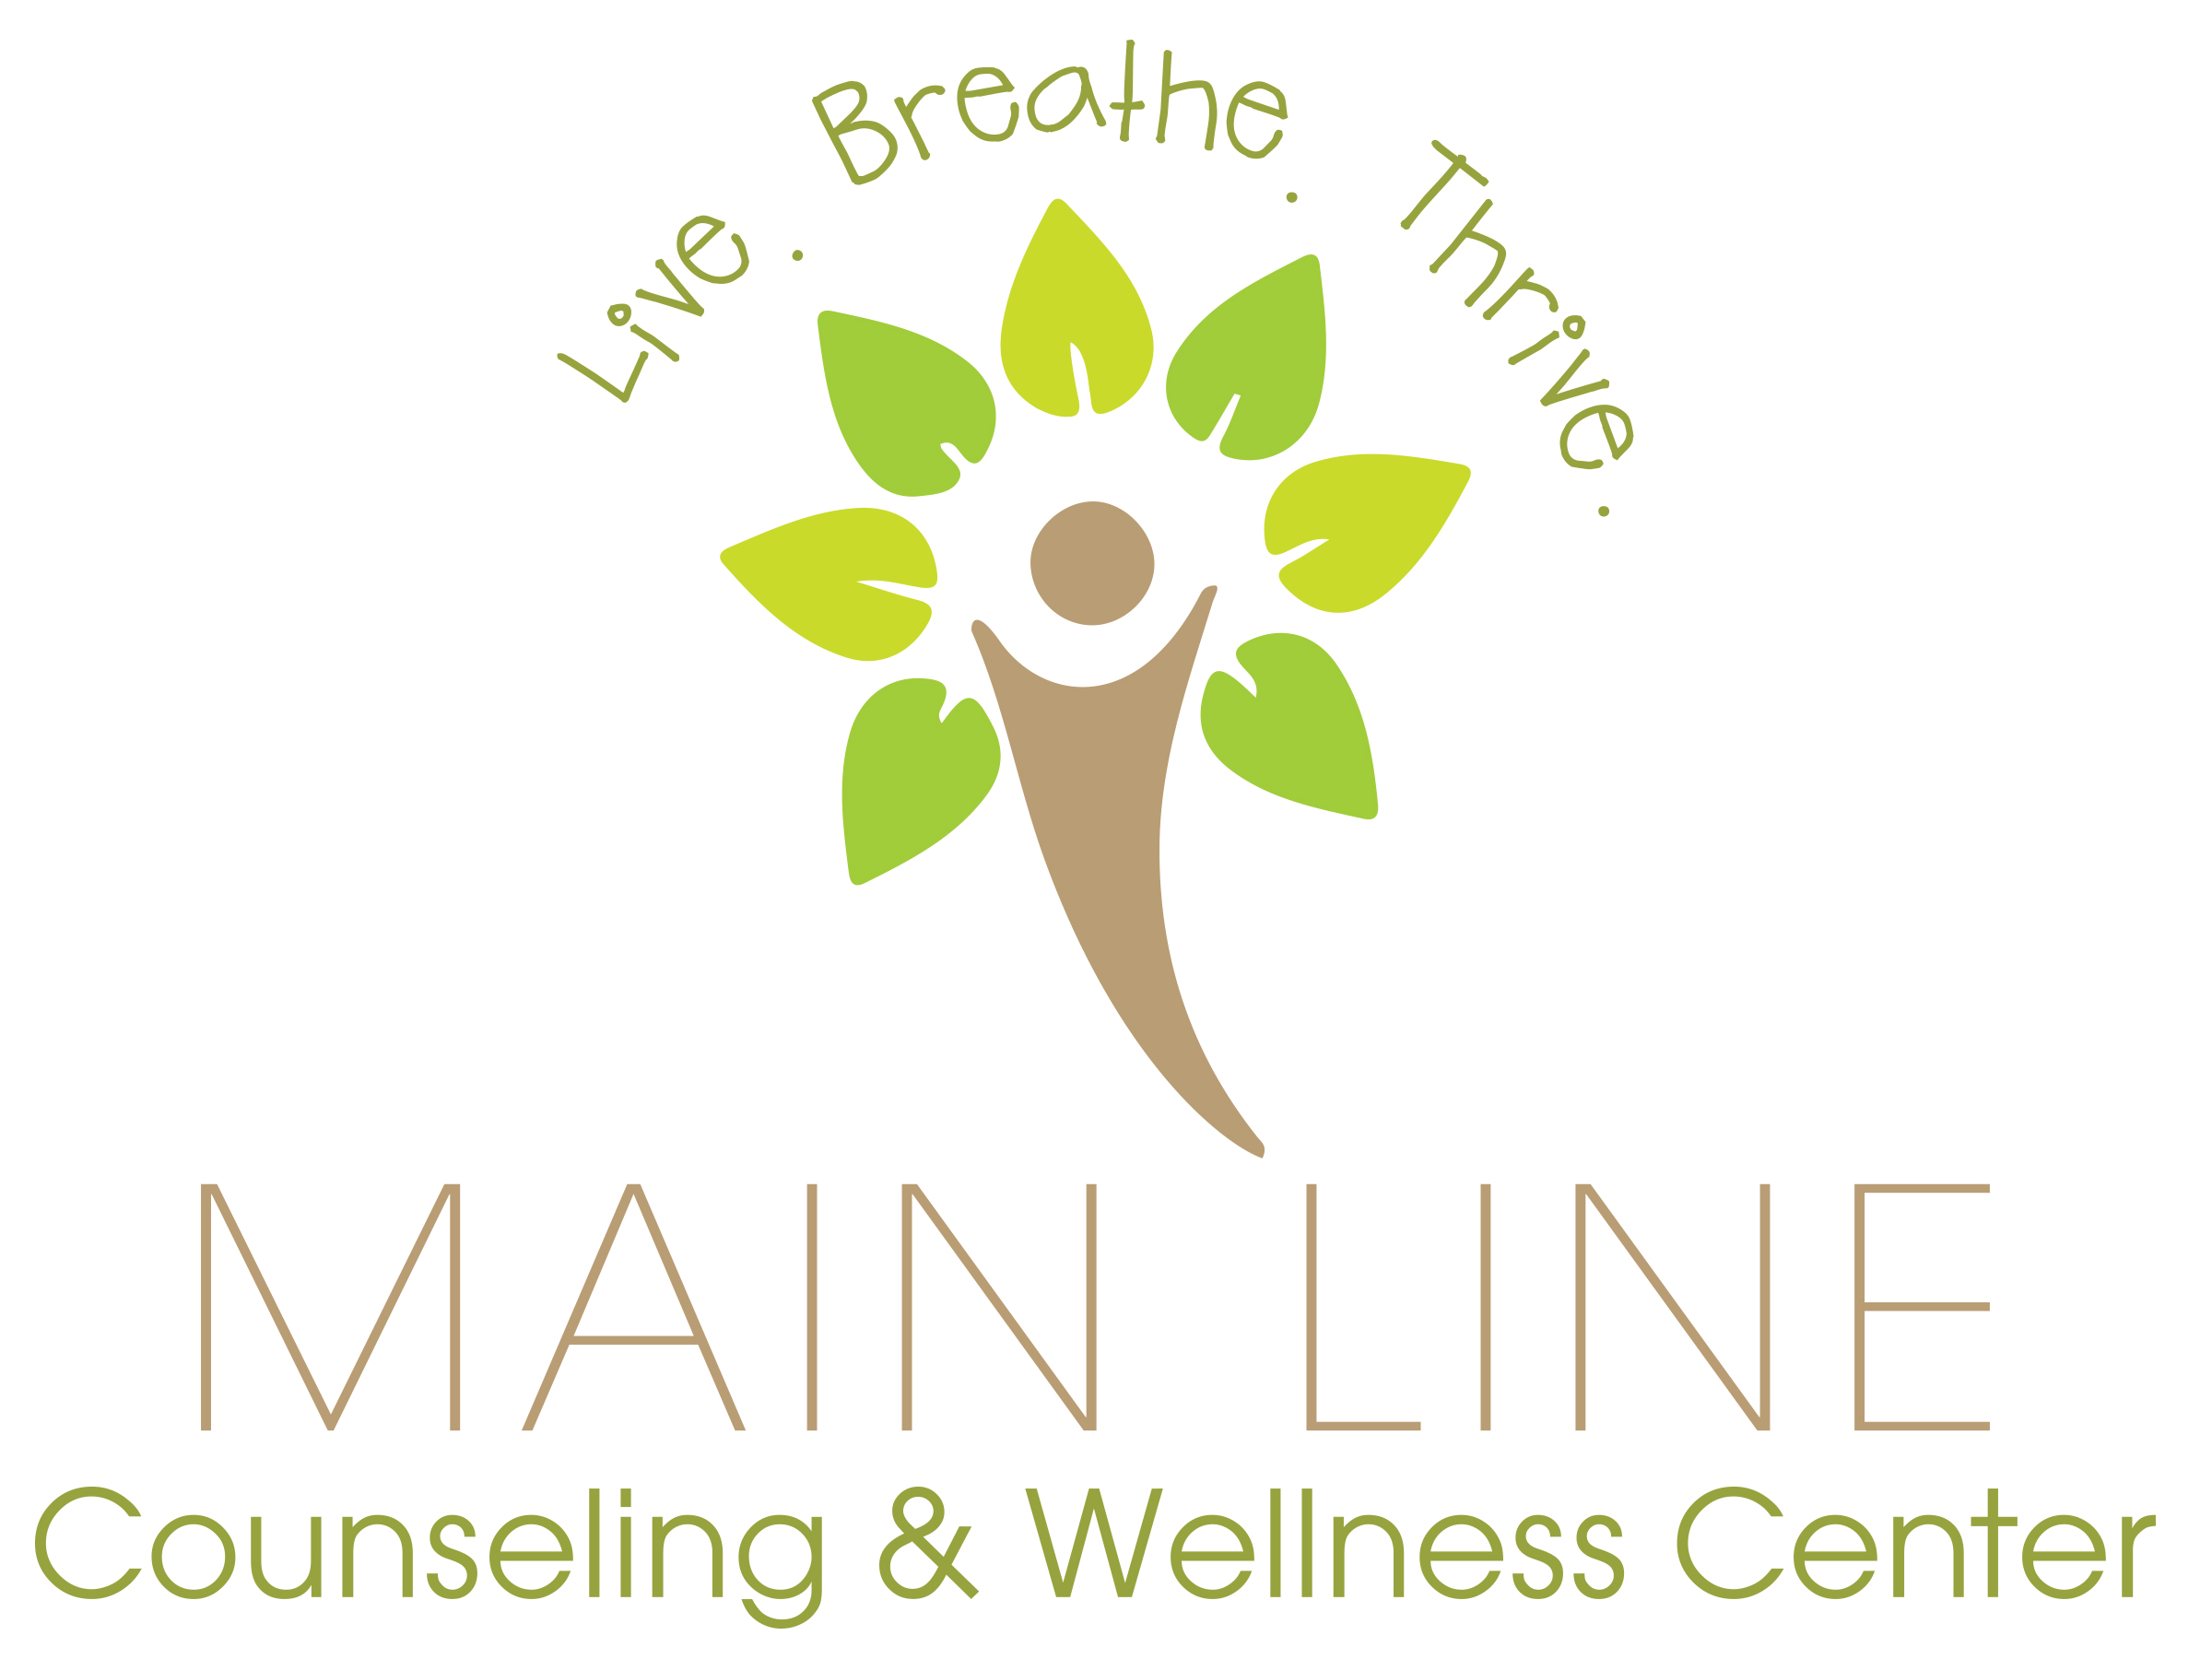 Main Line Counseling & Wellness Center, Inc. Photo